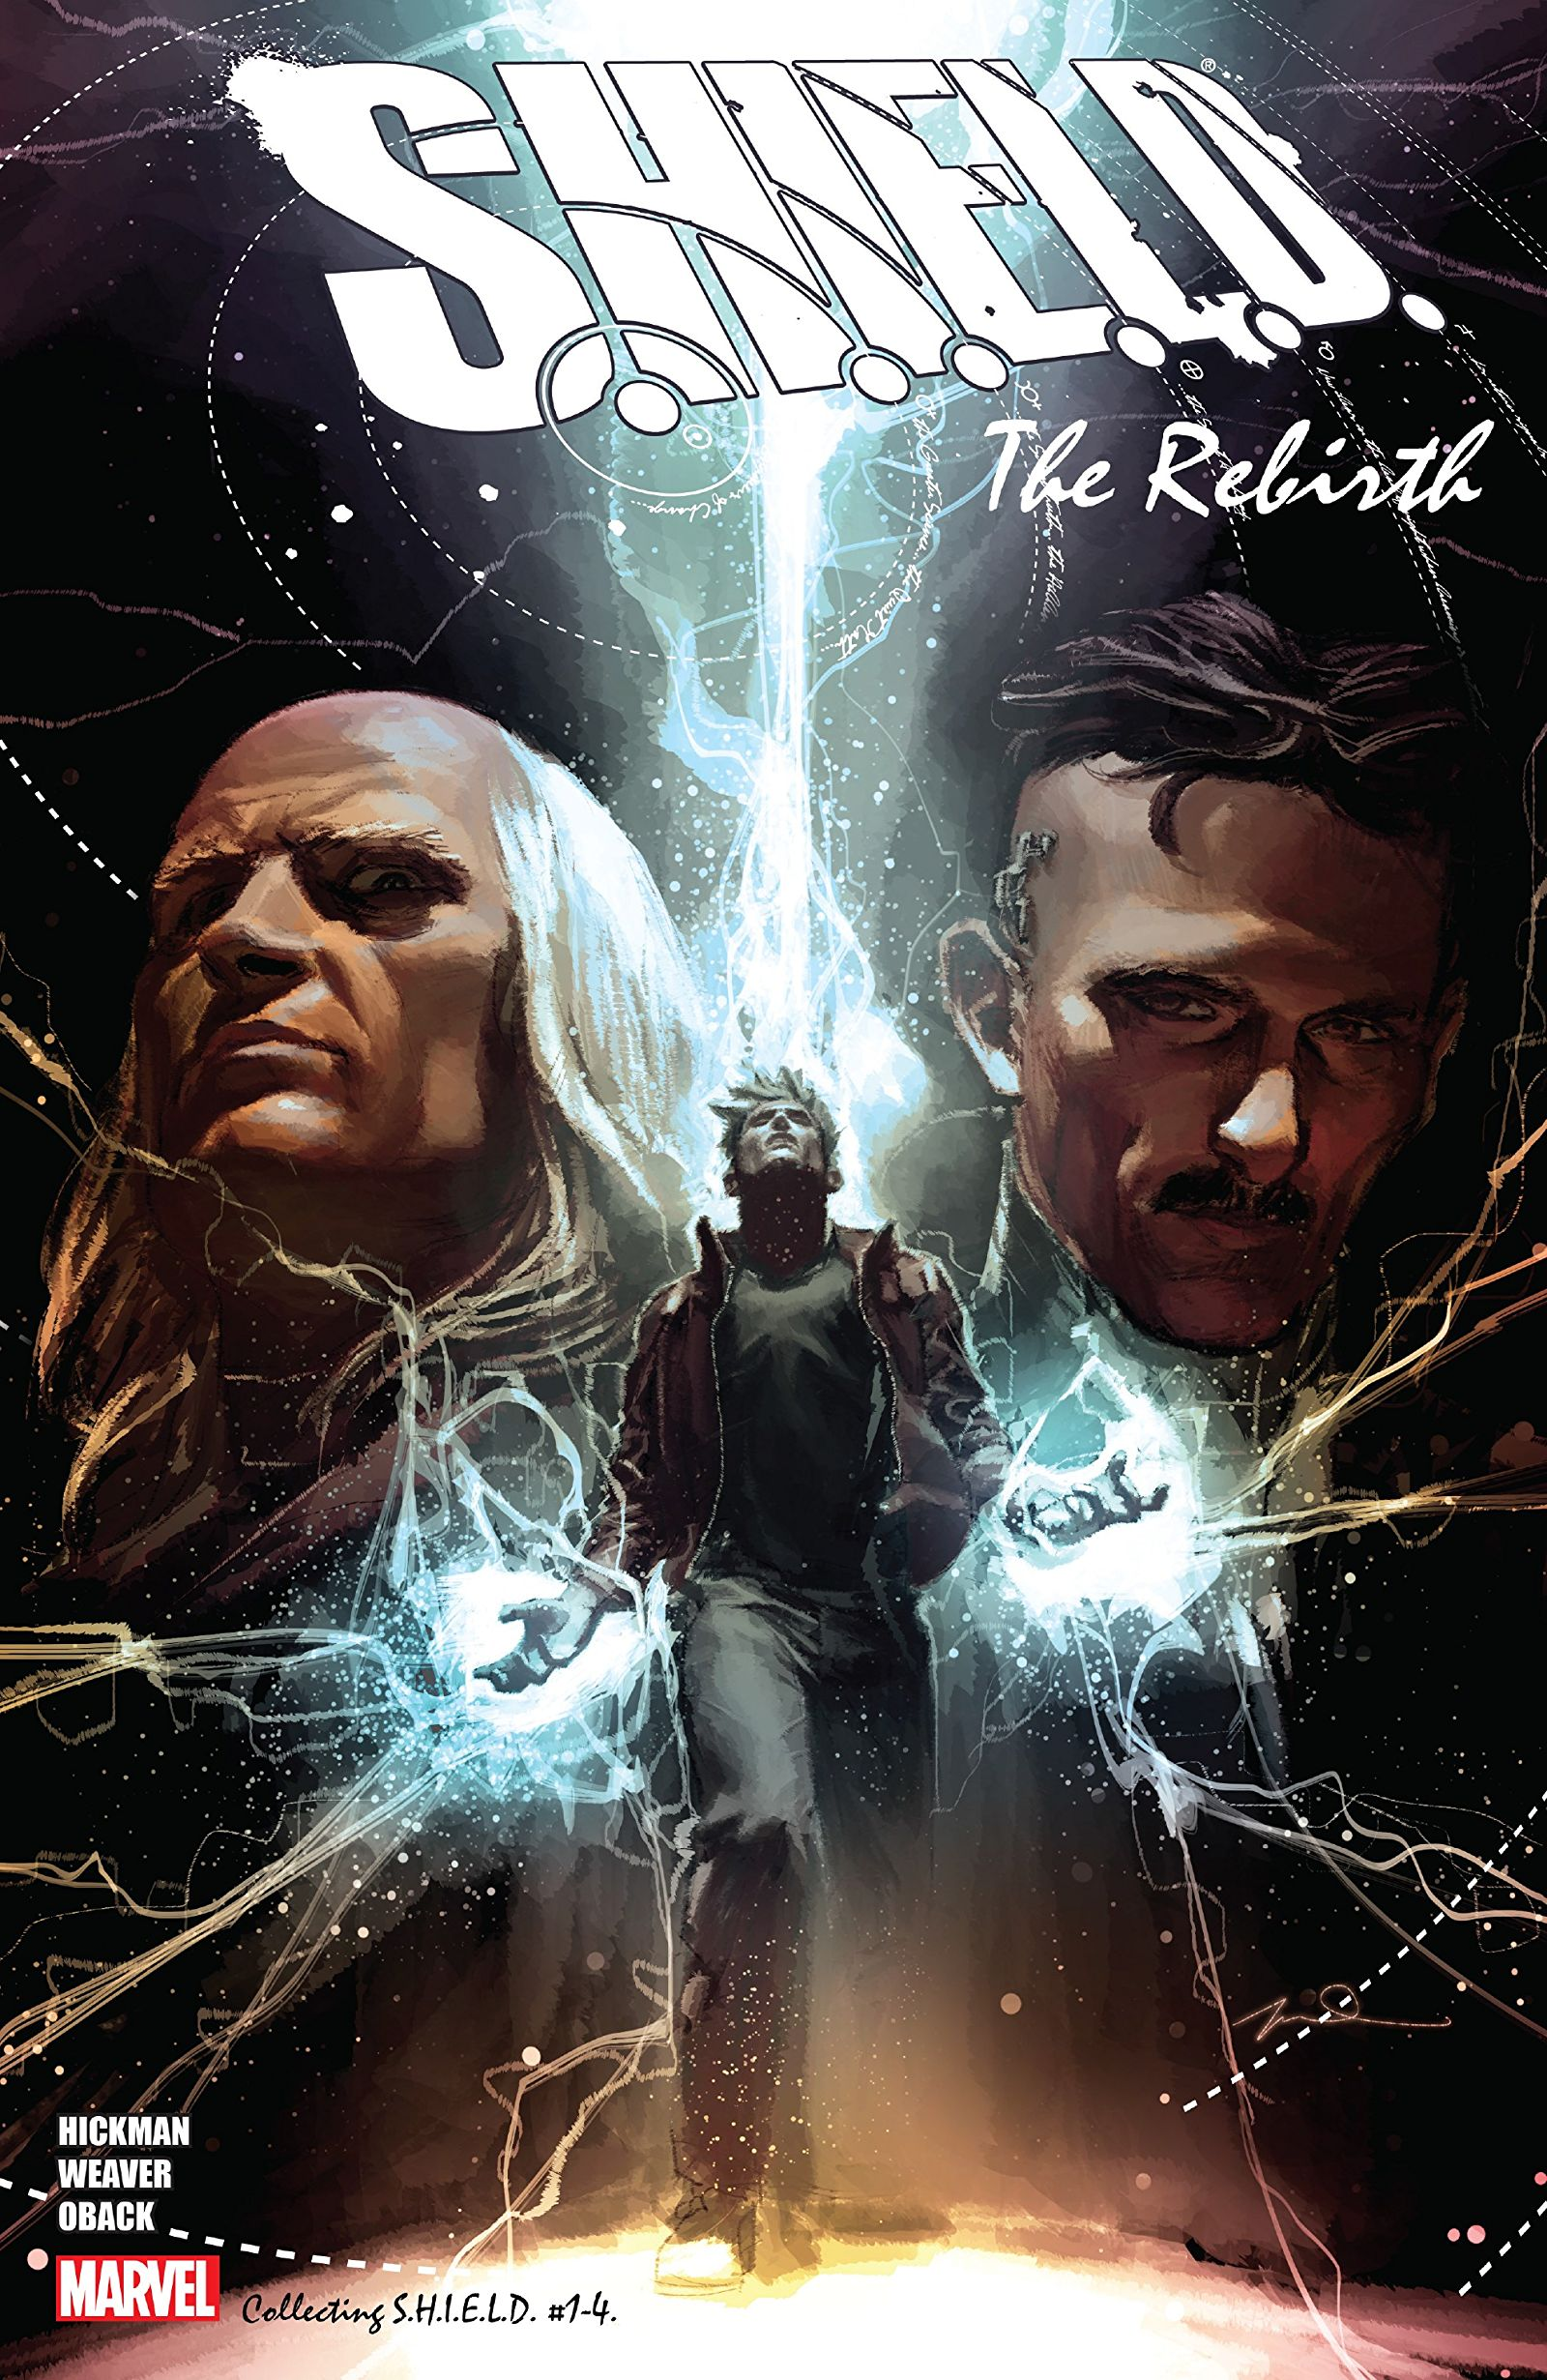 S.H.I.E.L.D.: The Rebirth Vol 1 1